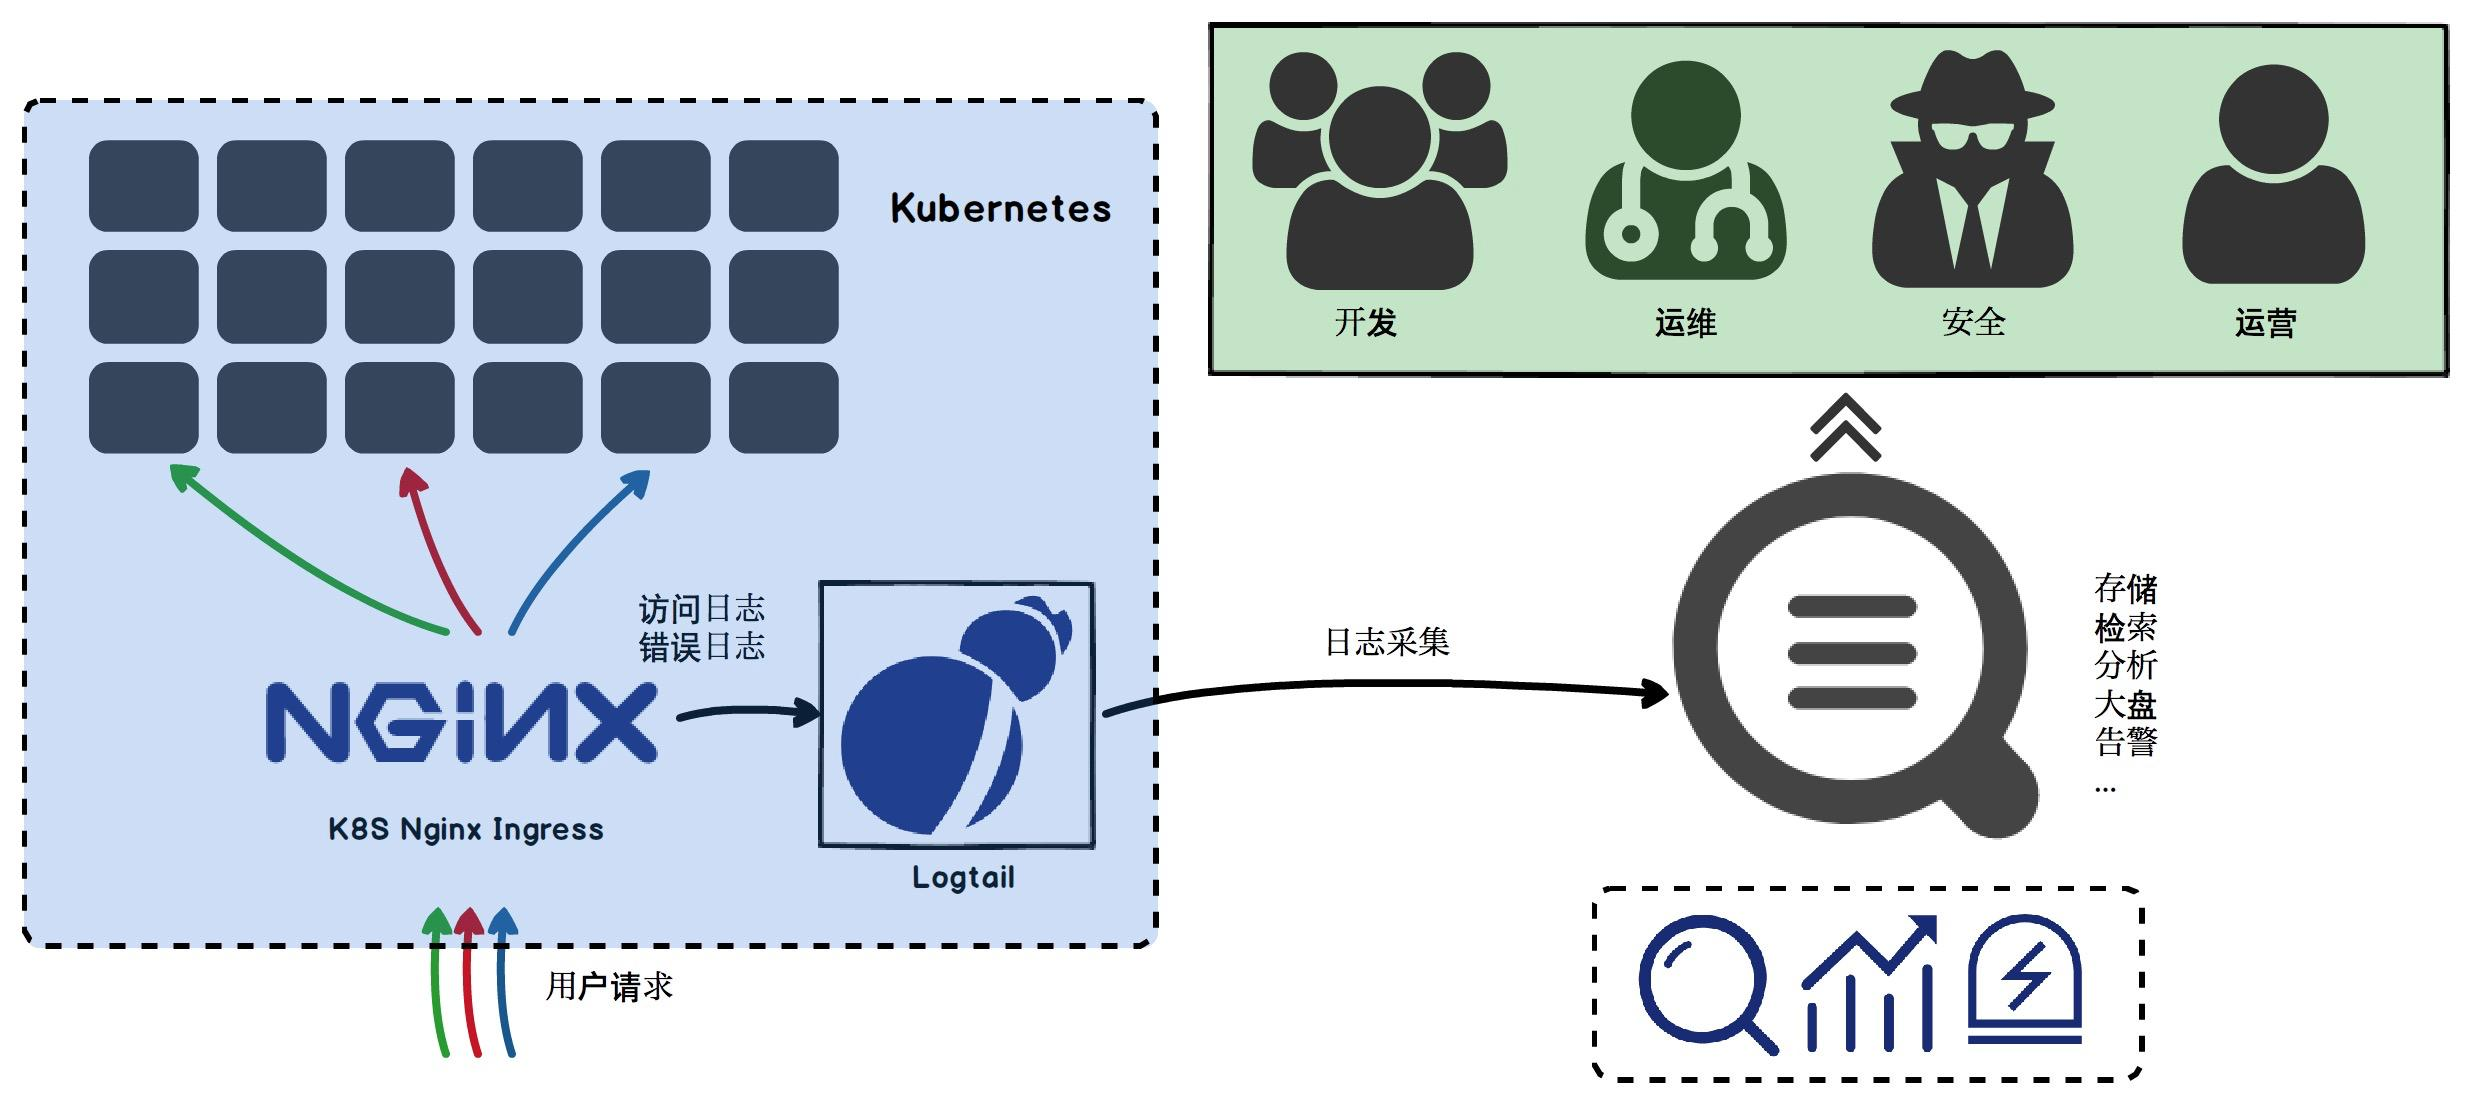 Kubernetes Ingress Best Practices for Log Analysis and